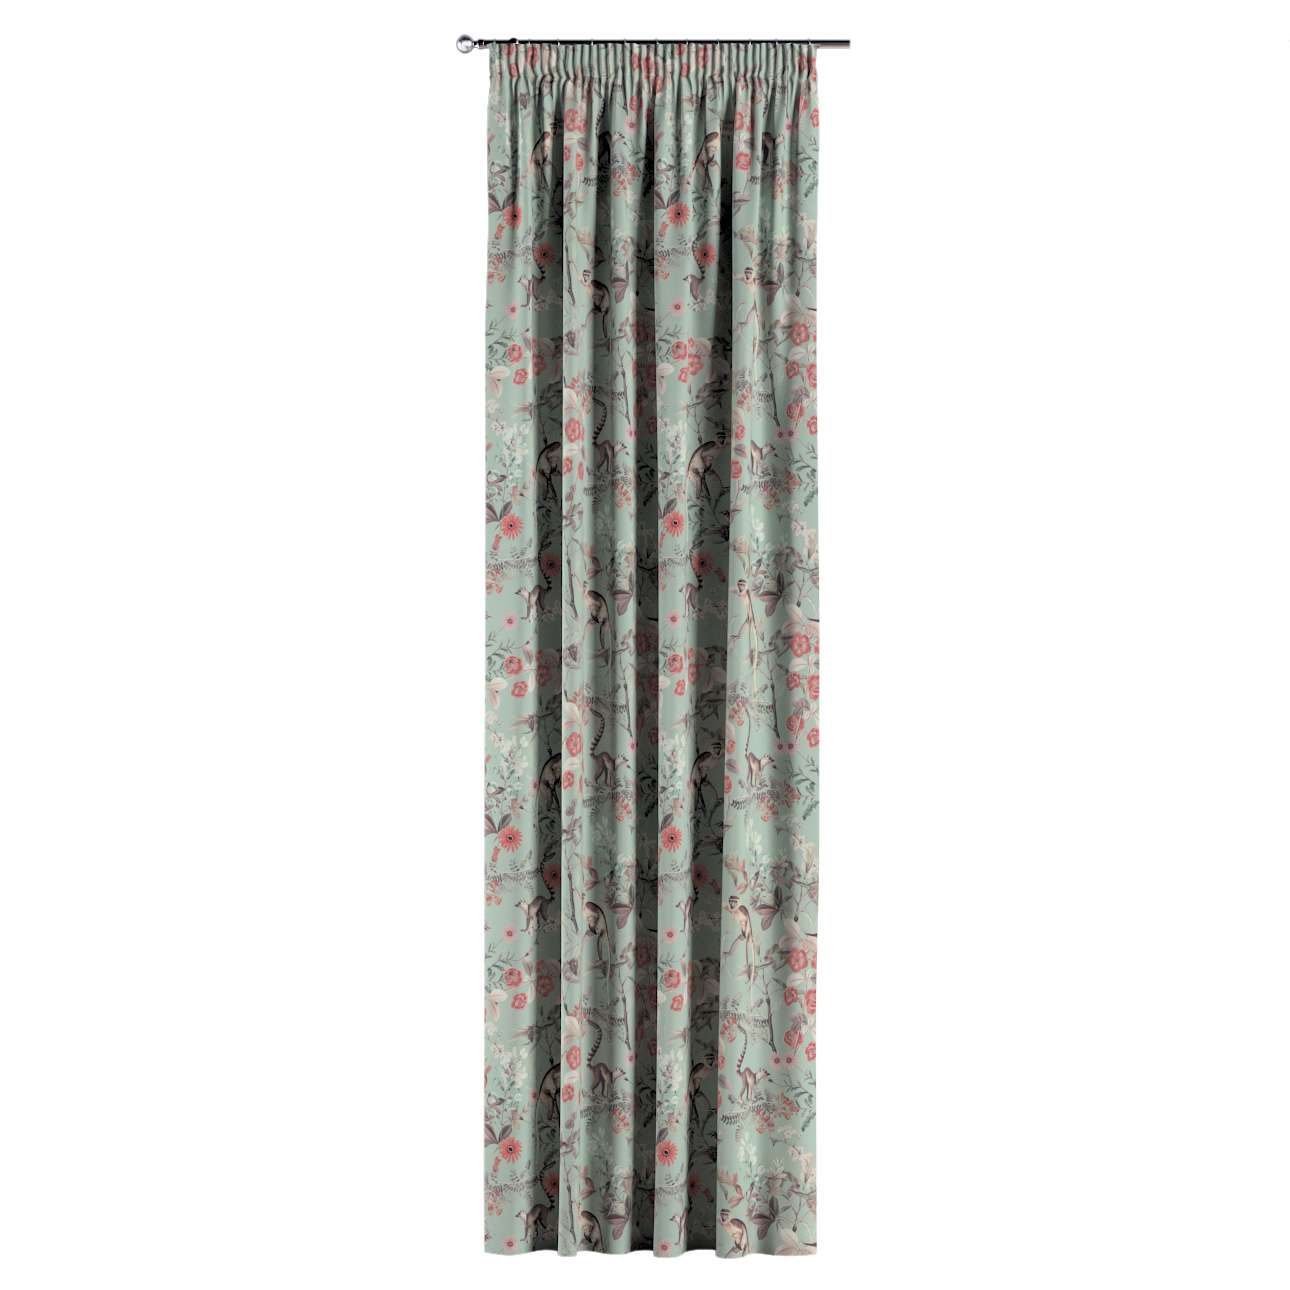 Pencil pleat curtains in collection Tropical Island, fabric: 142-62